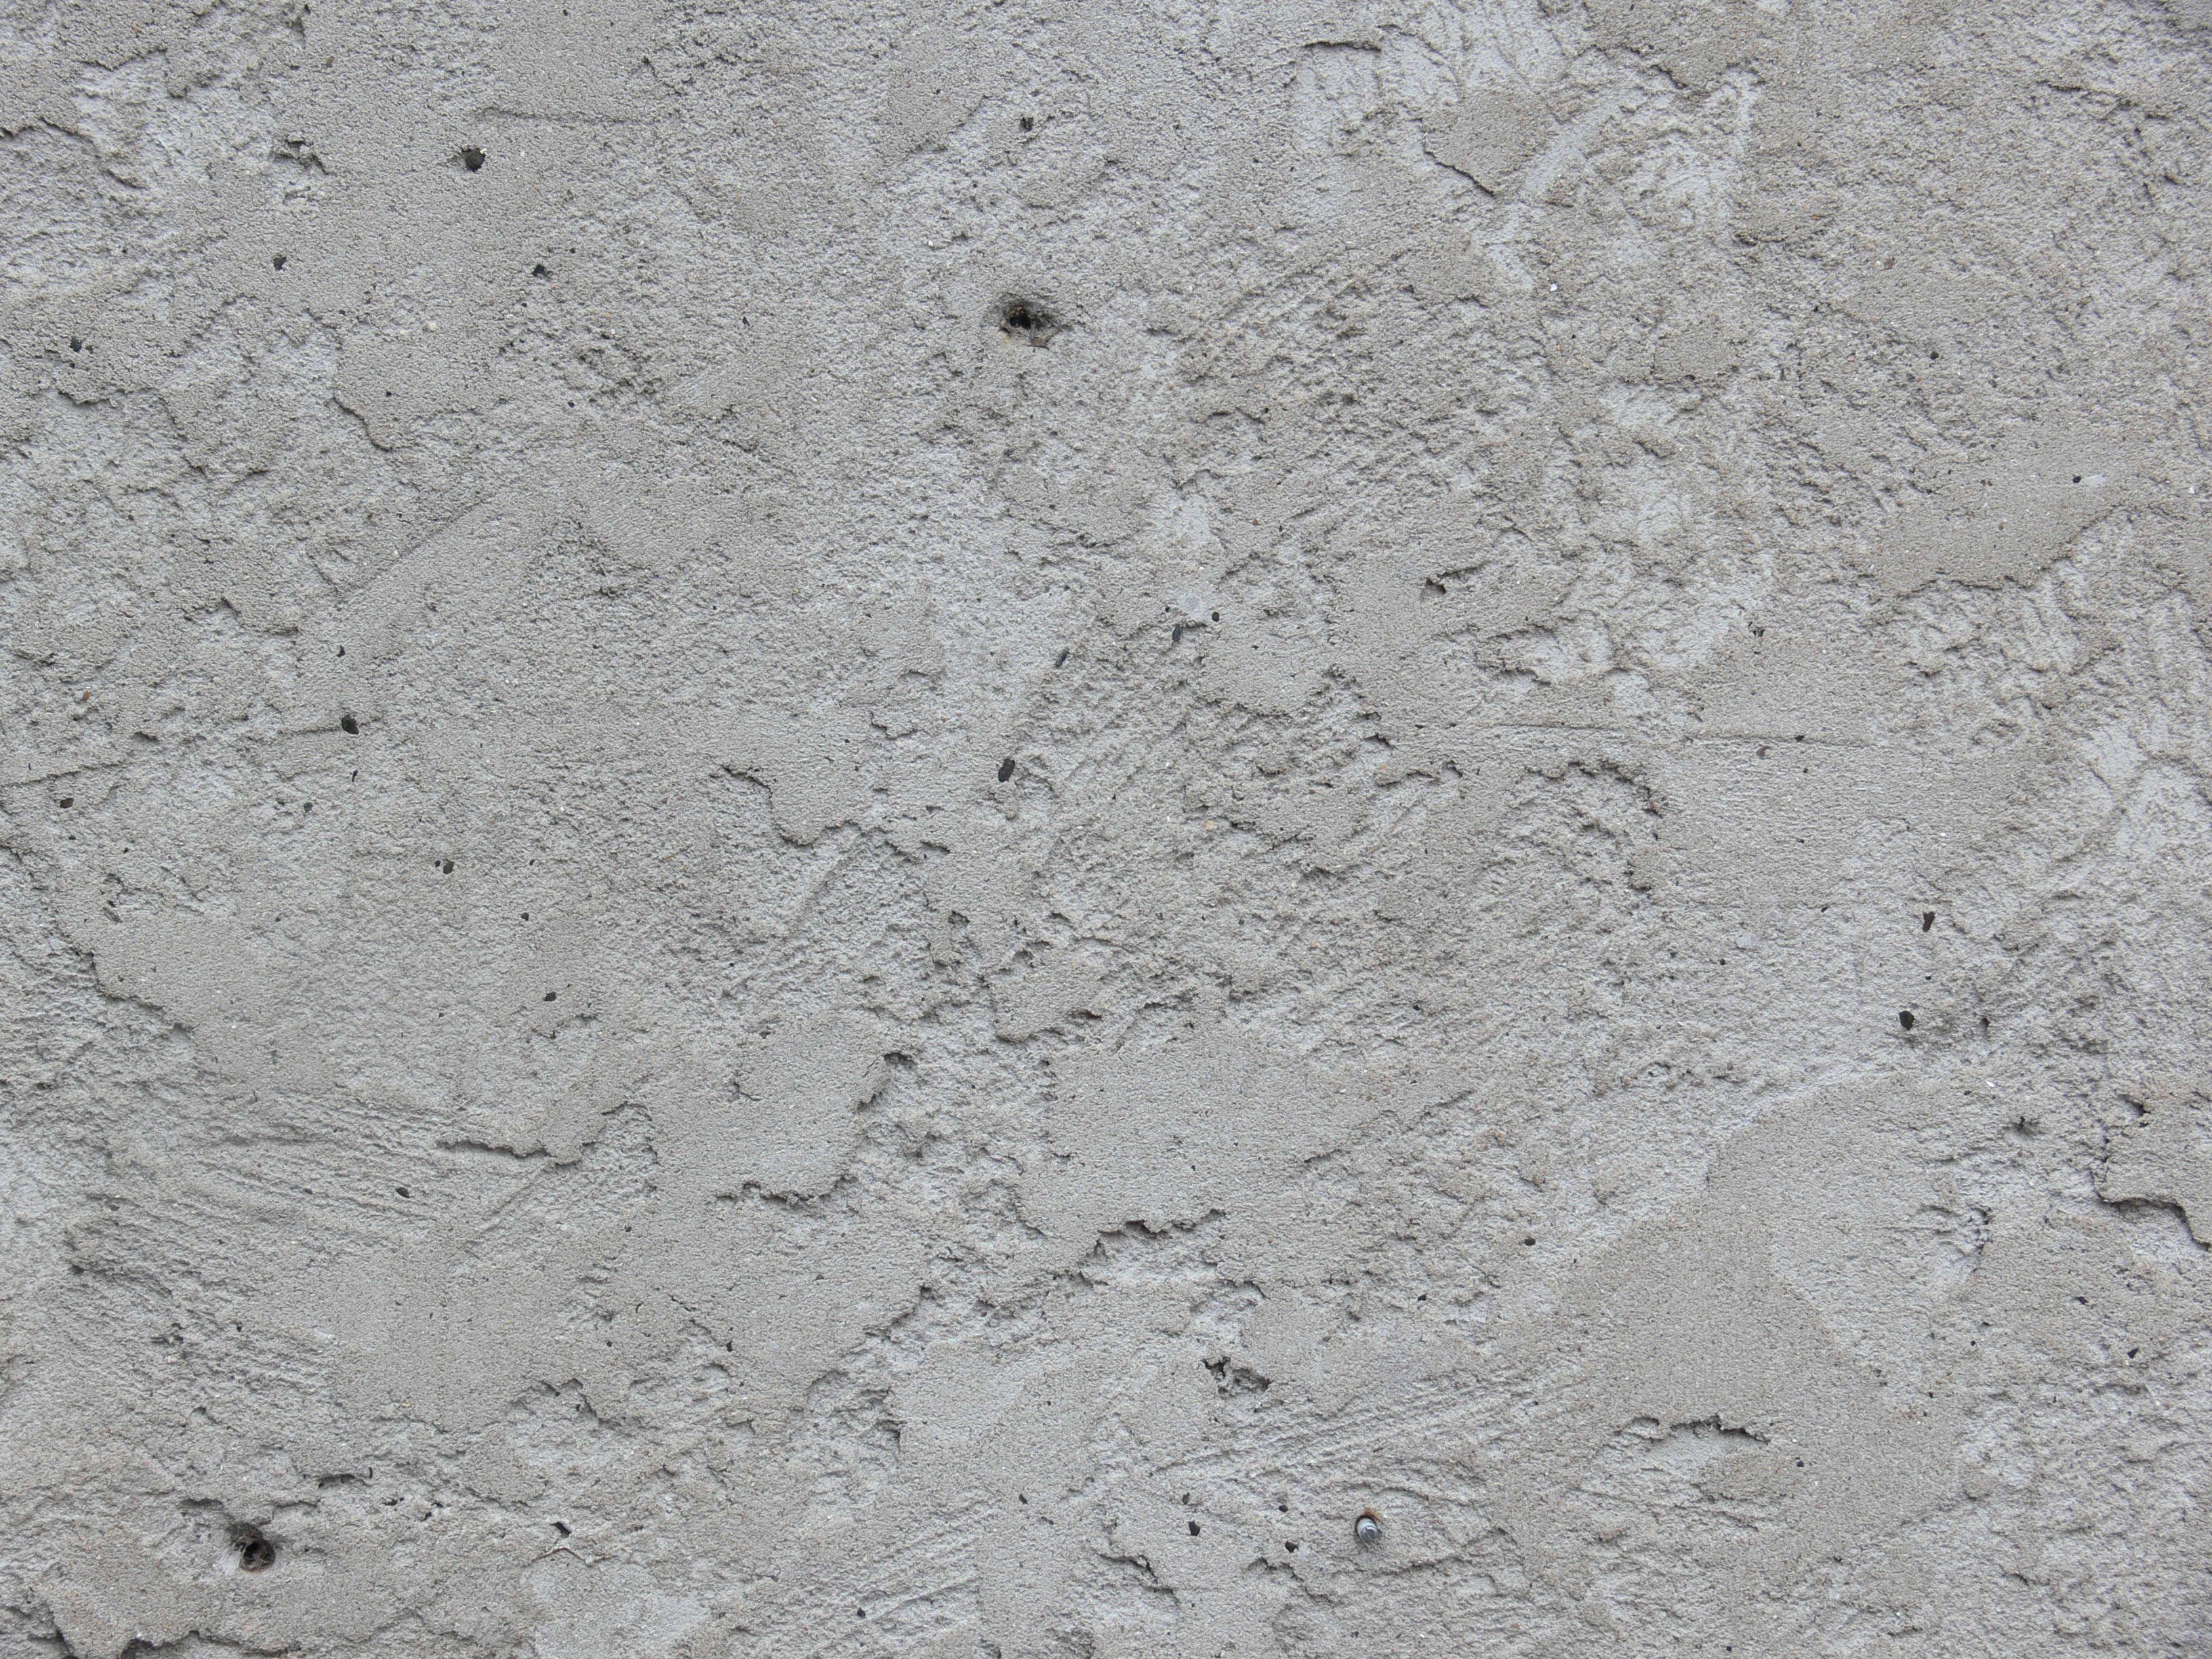 Free photo: Concrete texture - Abstract, Cement, Concrete - Free Download - Jooinn